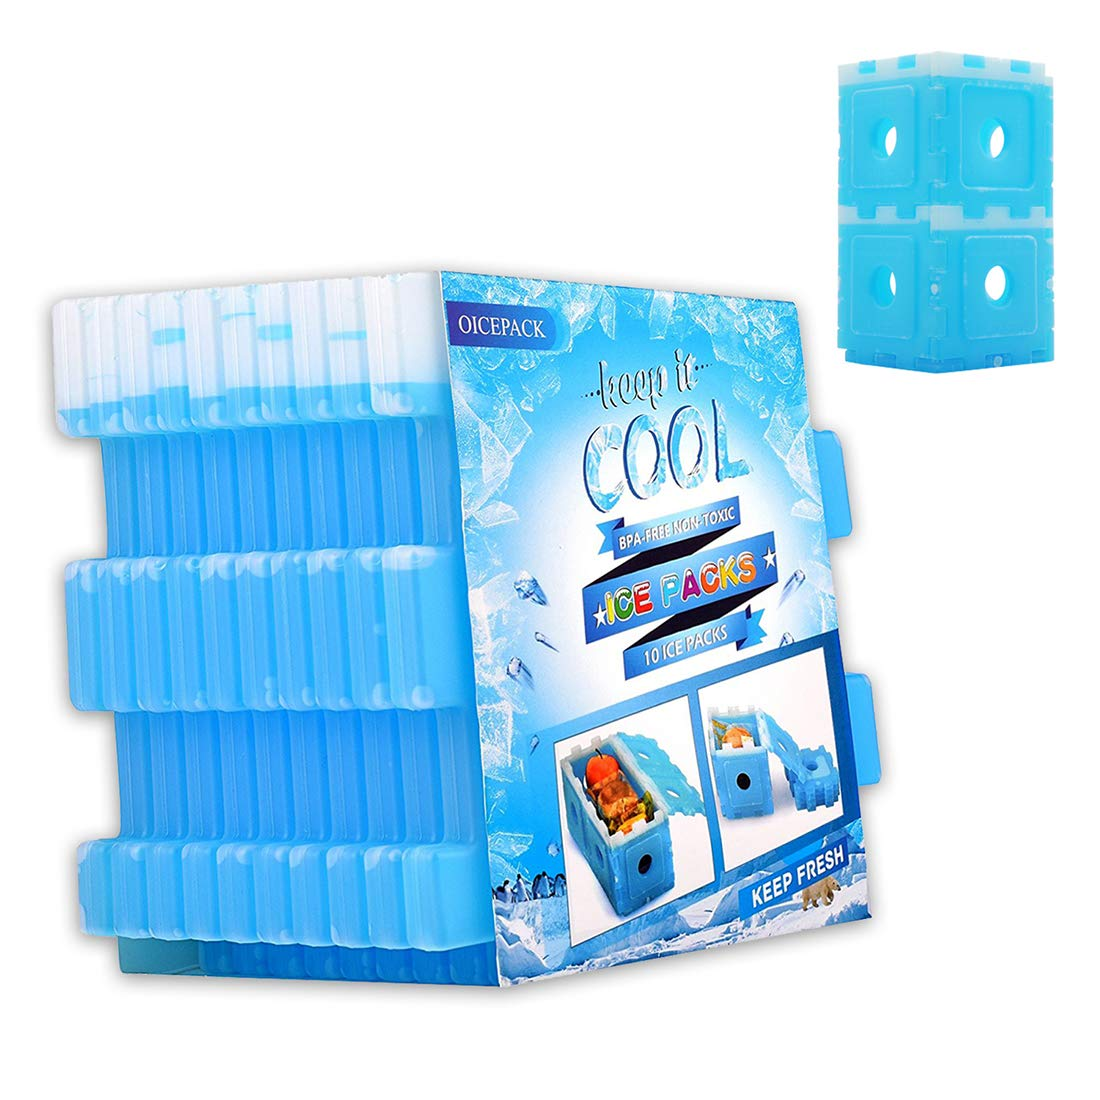 Lightweight Freezer Cold Packs For Coolers Slim Stay Cool Reusable Ice Pack for Lunch Box Lunch Boxes /& Camping 6 Pack